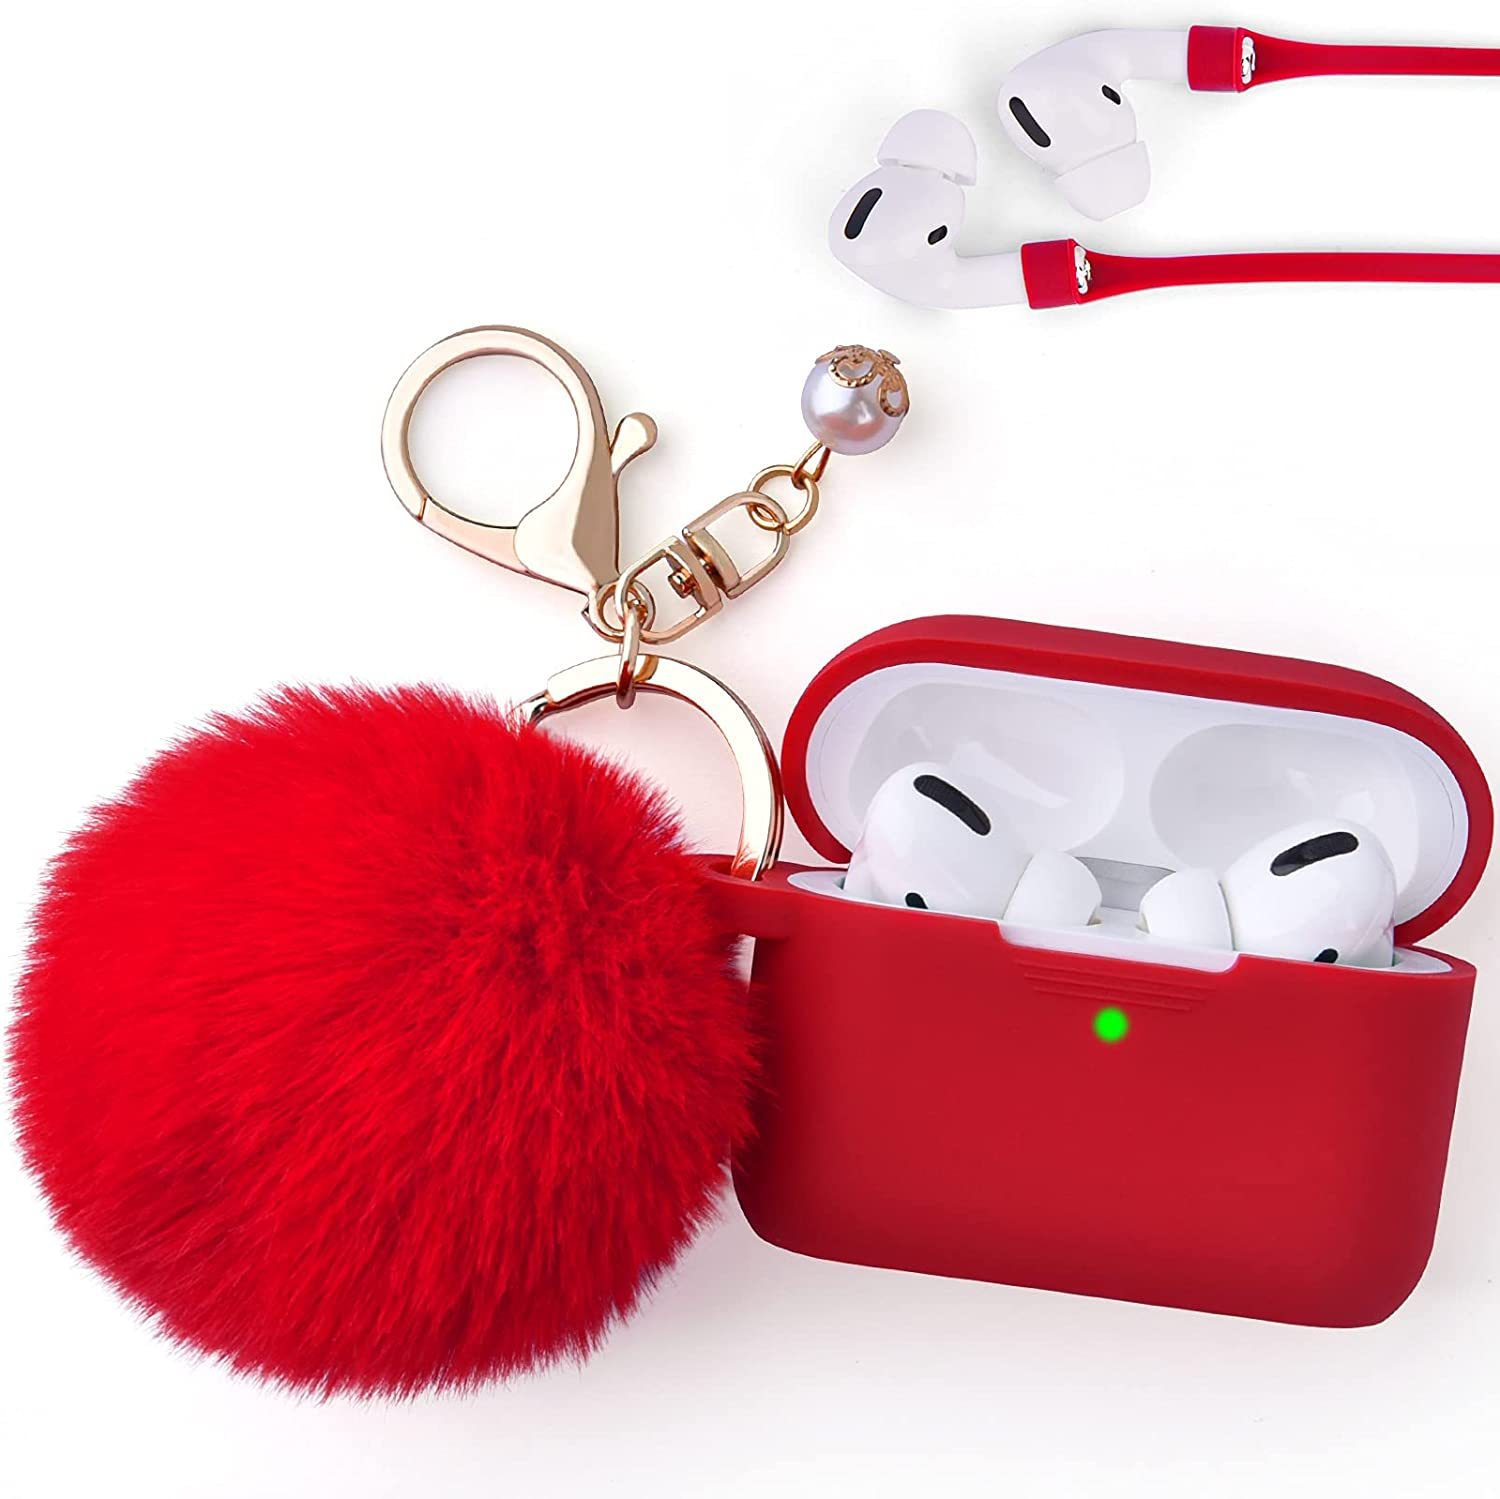 Case for Airpods Pro, Filoto Airpod Pro Case Cover for Apple AirPods Pro Wireless Charging Case, Cute Air Pods 3 Case Silicone Protective Accessories Keychain/Pompom/Strap (Red)